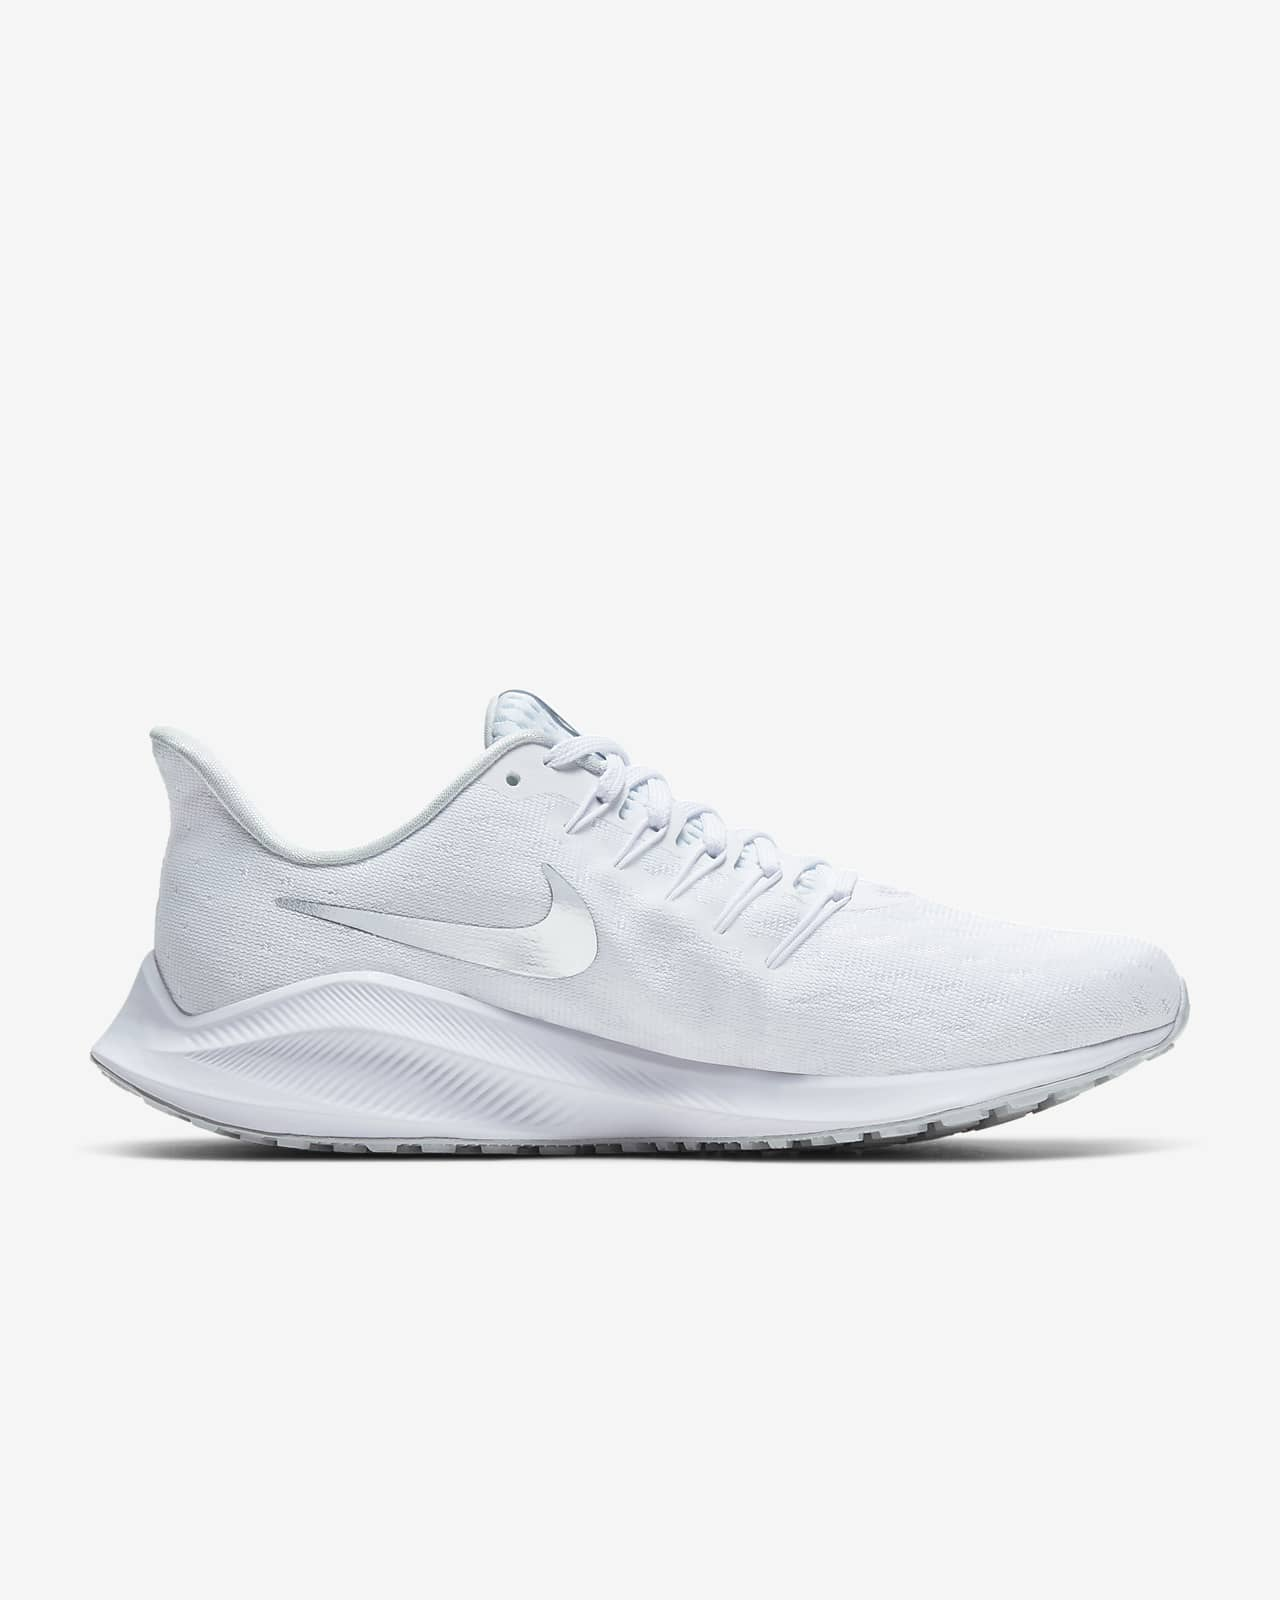 burden forget And so on  Scarpa da running Nike Air Zoom Vomero 14 - Donna. Nike CH